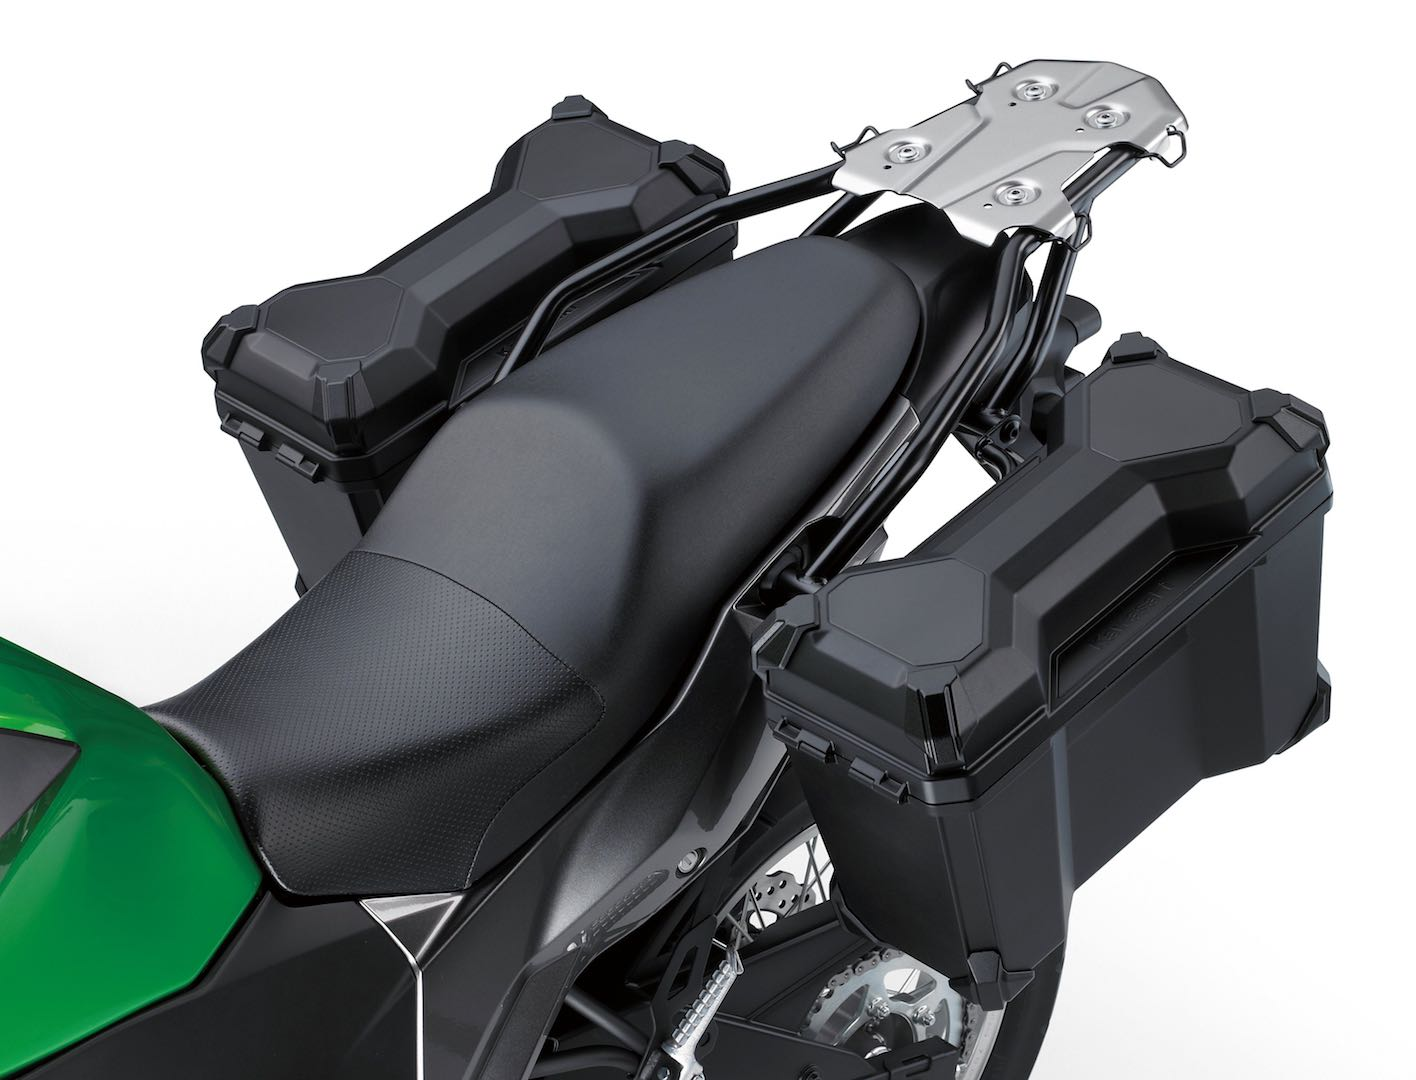 2017 kawasaki versys-x 300 first look | 14 fast facts